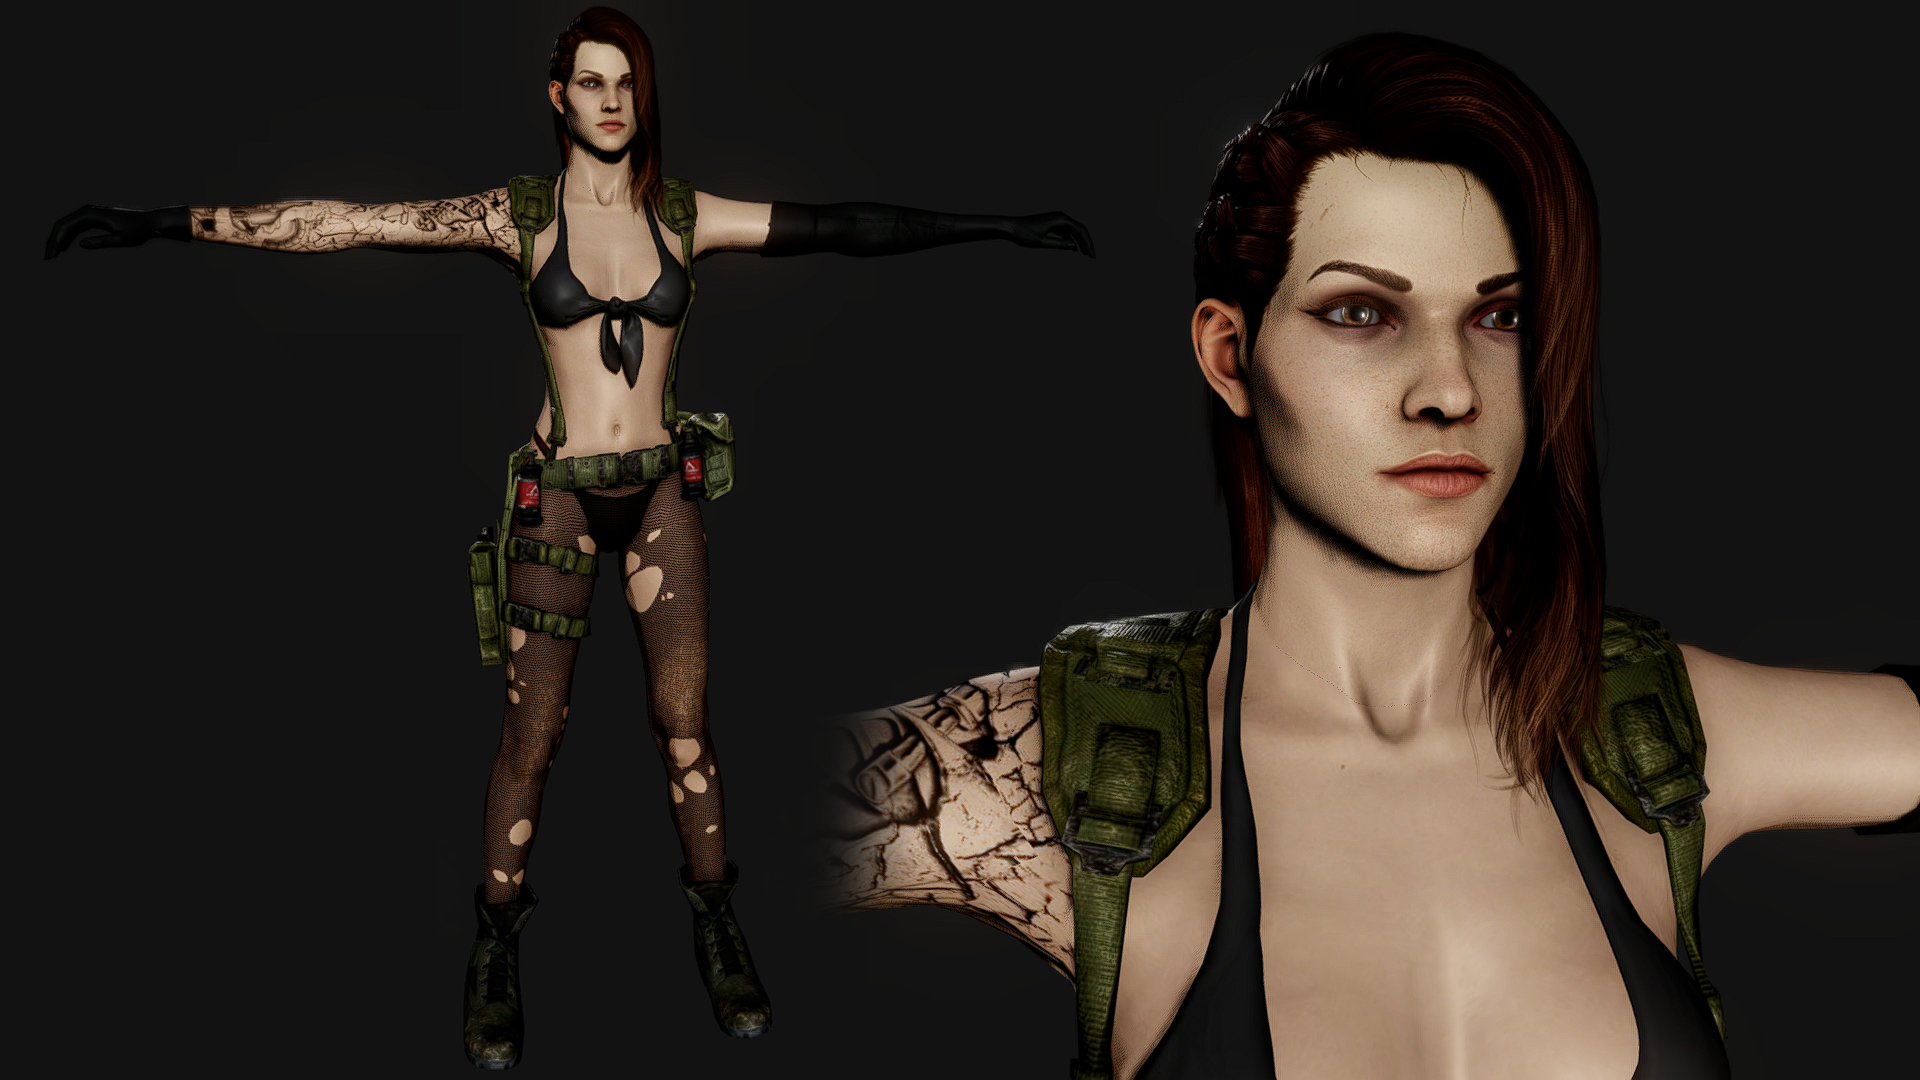 Shelly bombshel metal gear solid 5 quiet 0